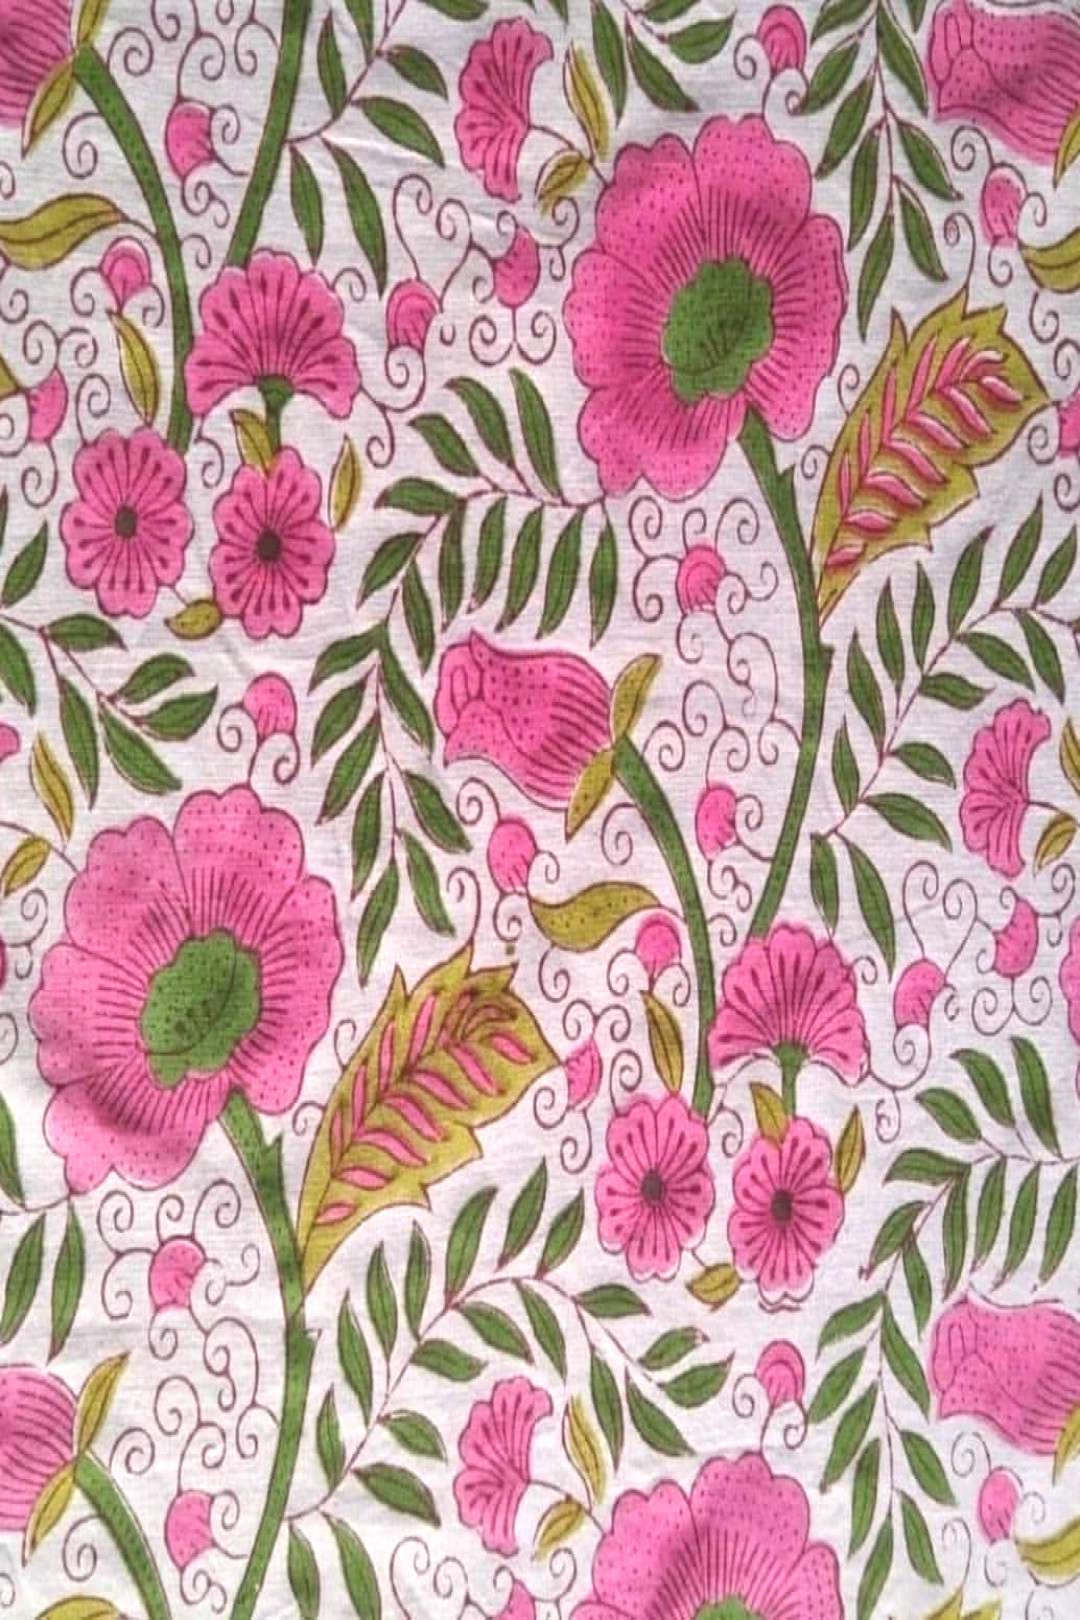 JEYPORE ARTS on May 31 2020 and plant and flower